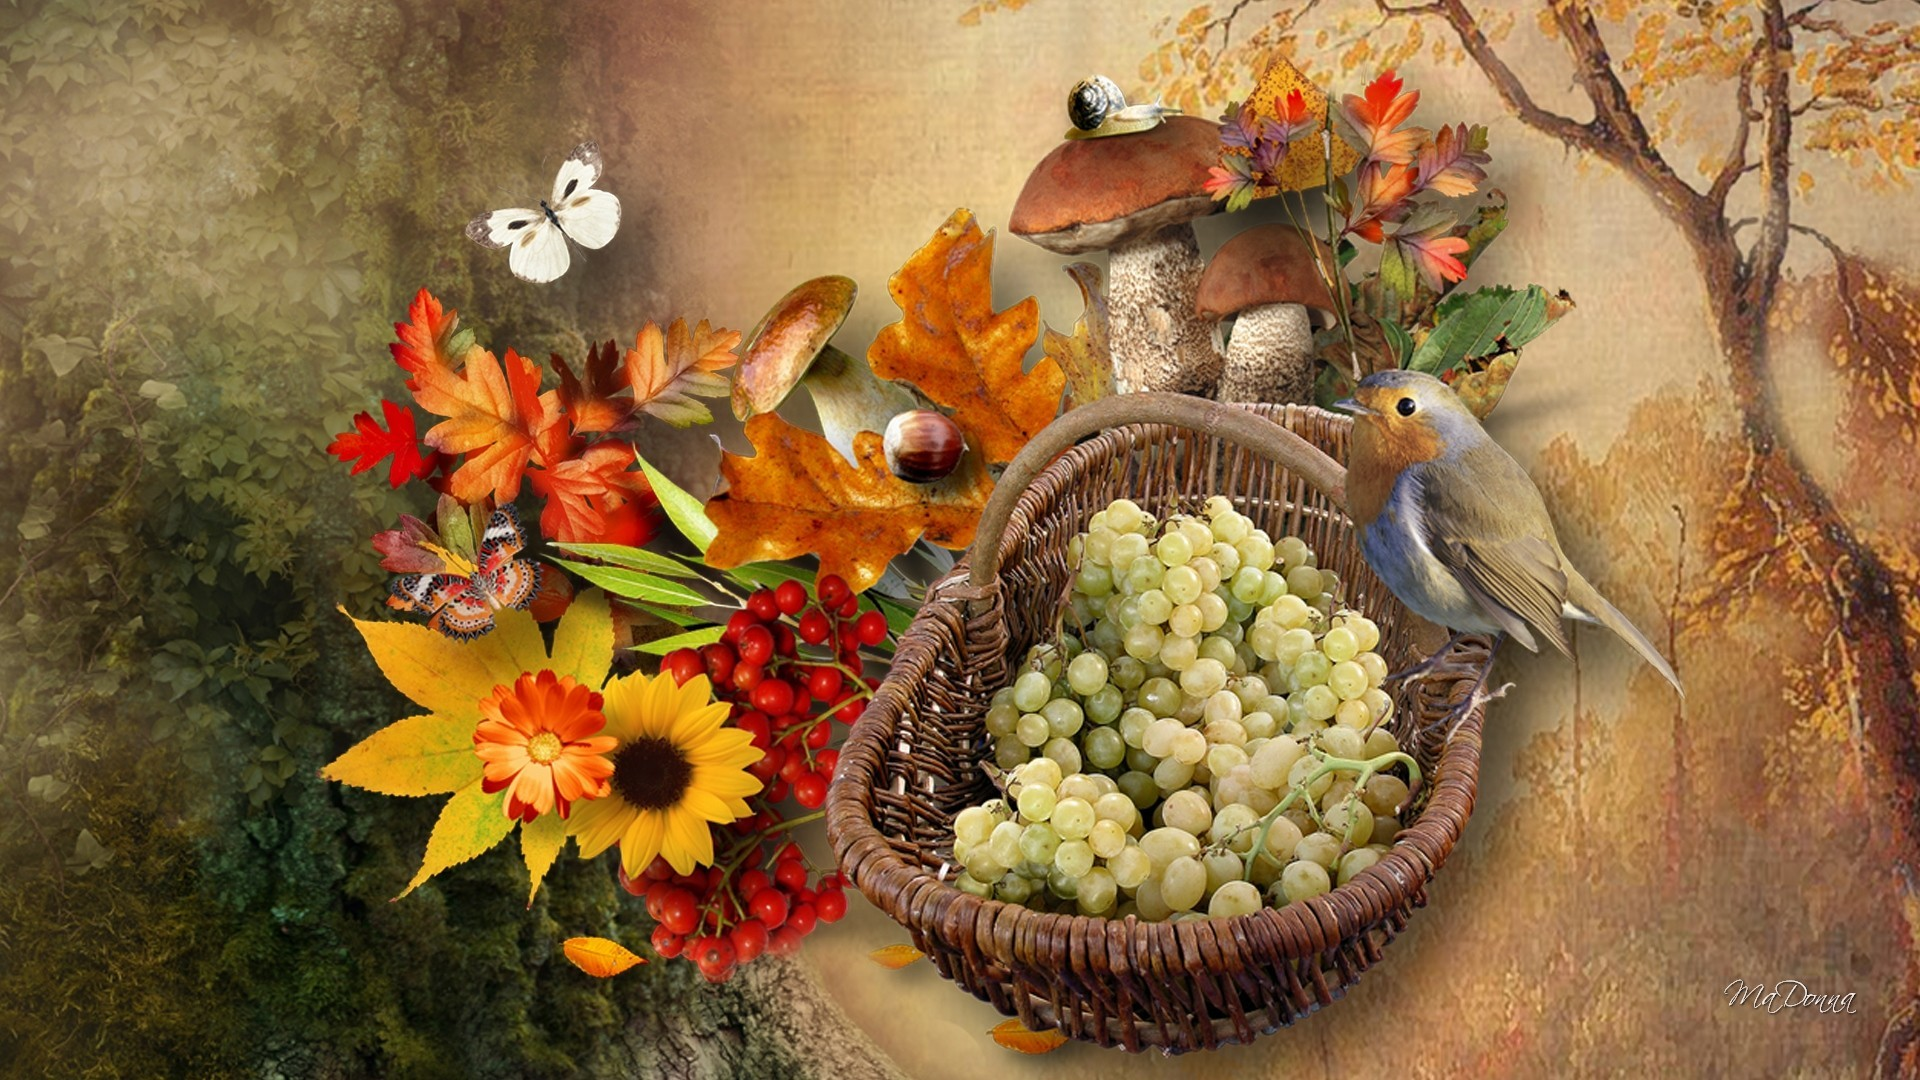 Images of fall flowers and leaves flowers healthy beautiful fall flowers wallpaper 50 images izmirmasajfo